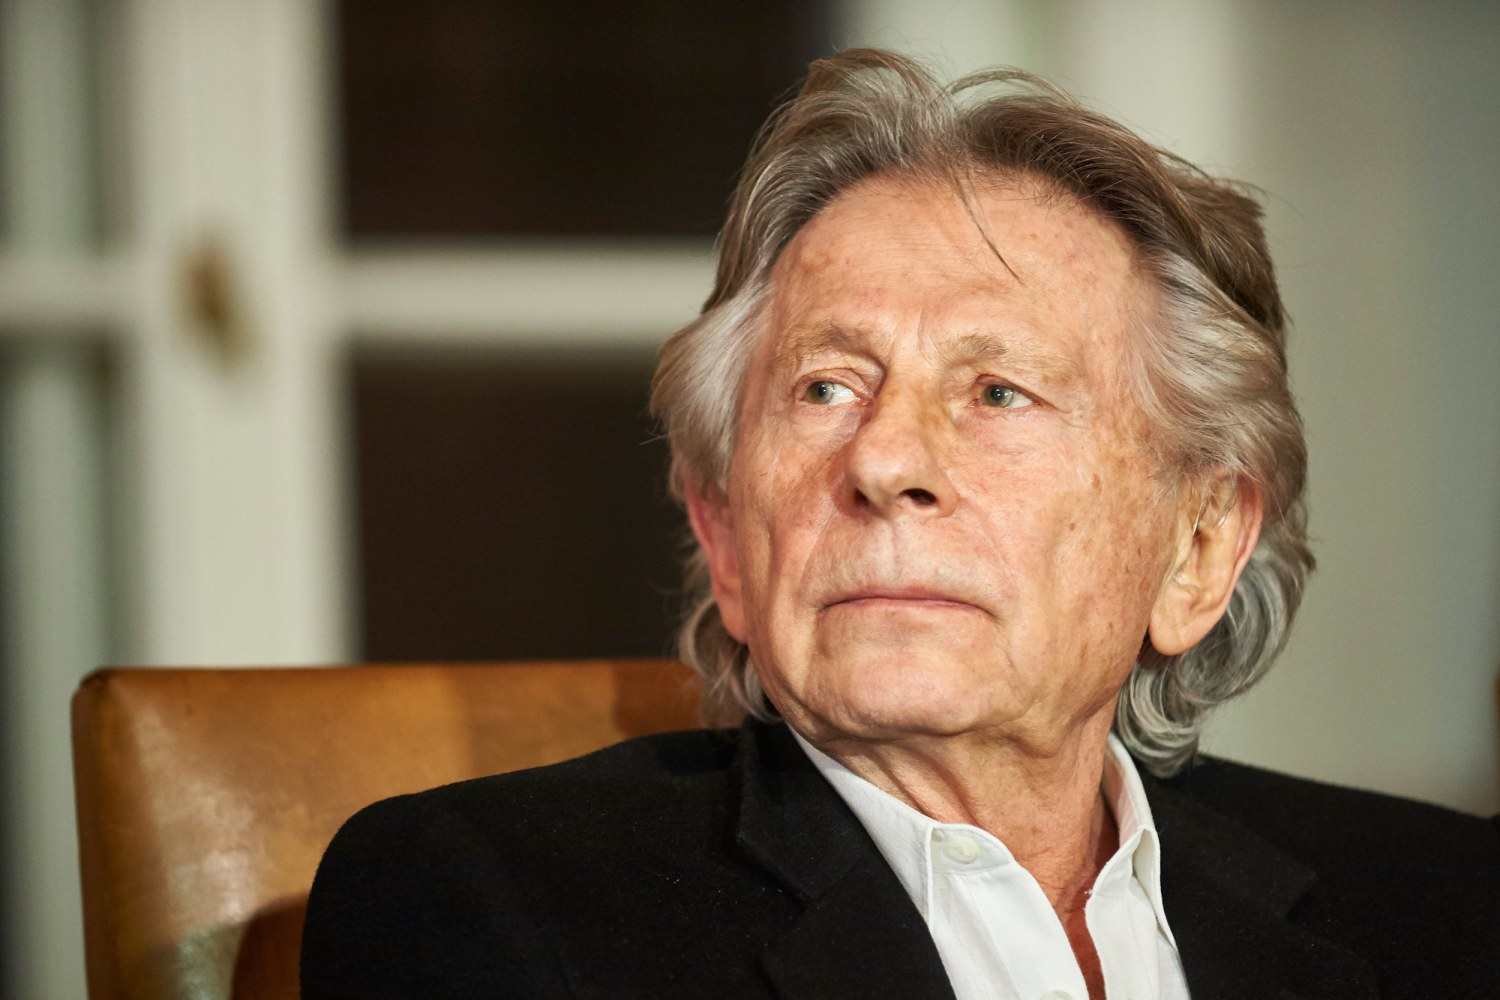 french polish film director roman polanski at a press conference on